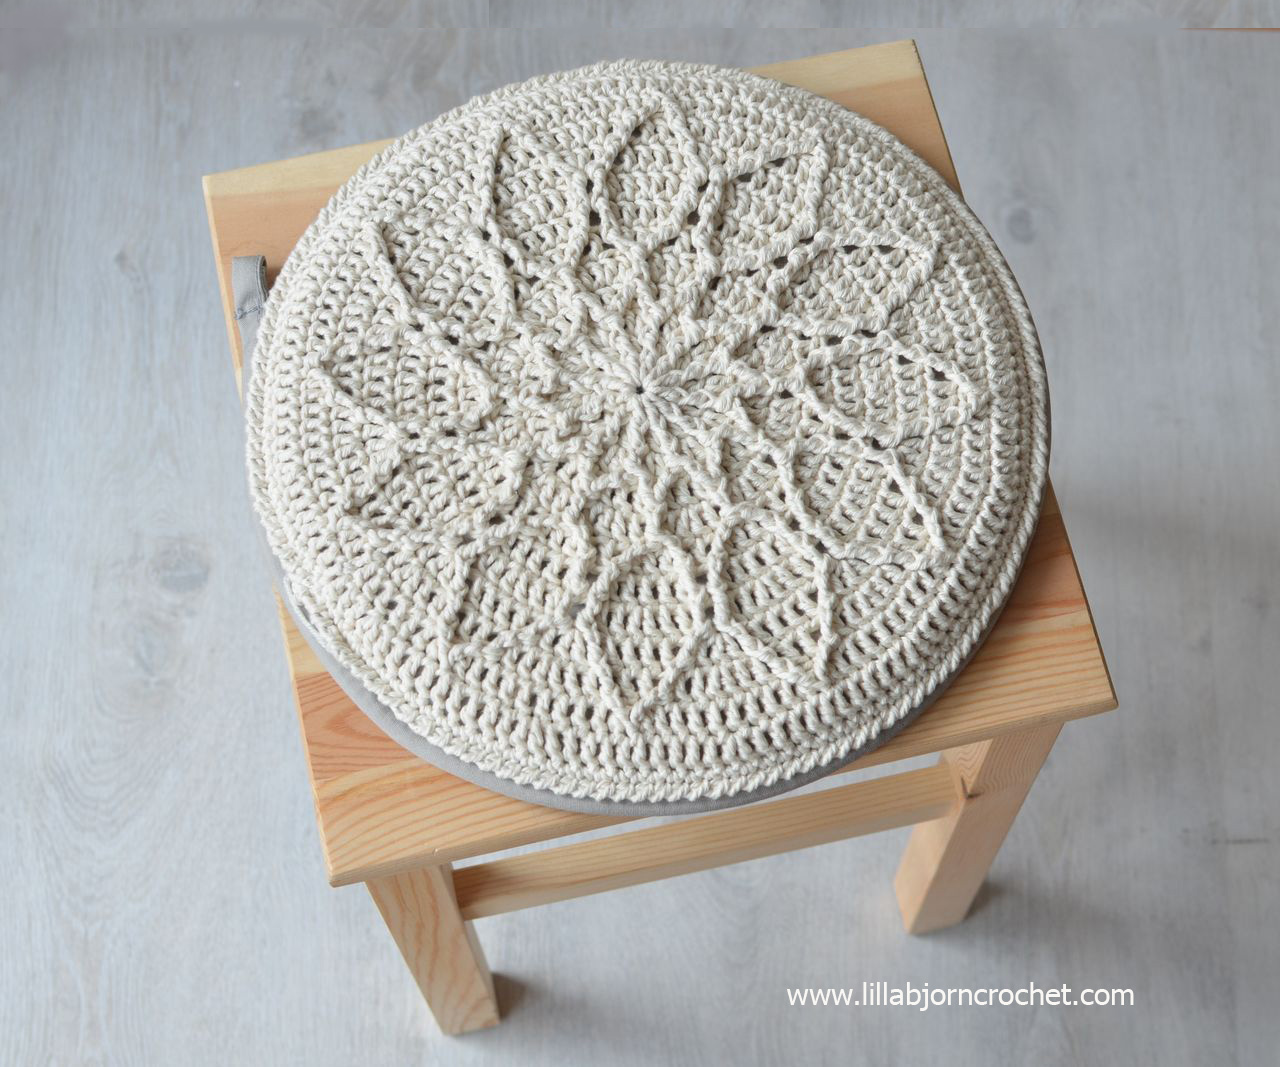 Beautiful Crochet Chair Cover Pattern Crest - Easy Scarf Knitting ...